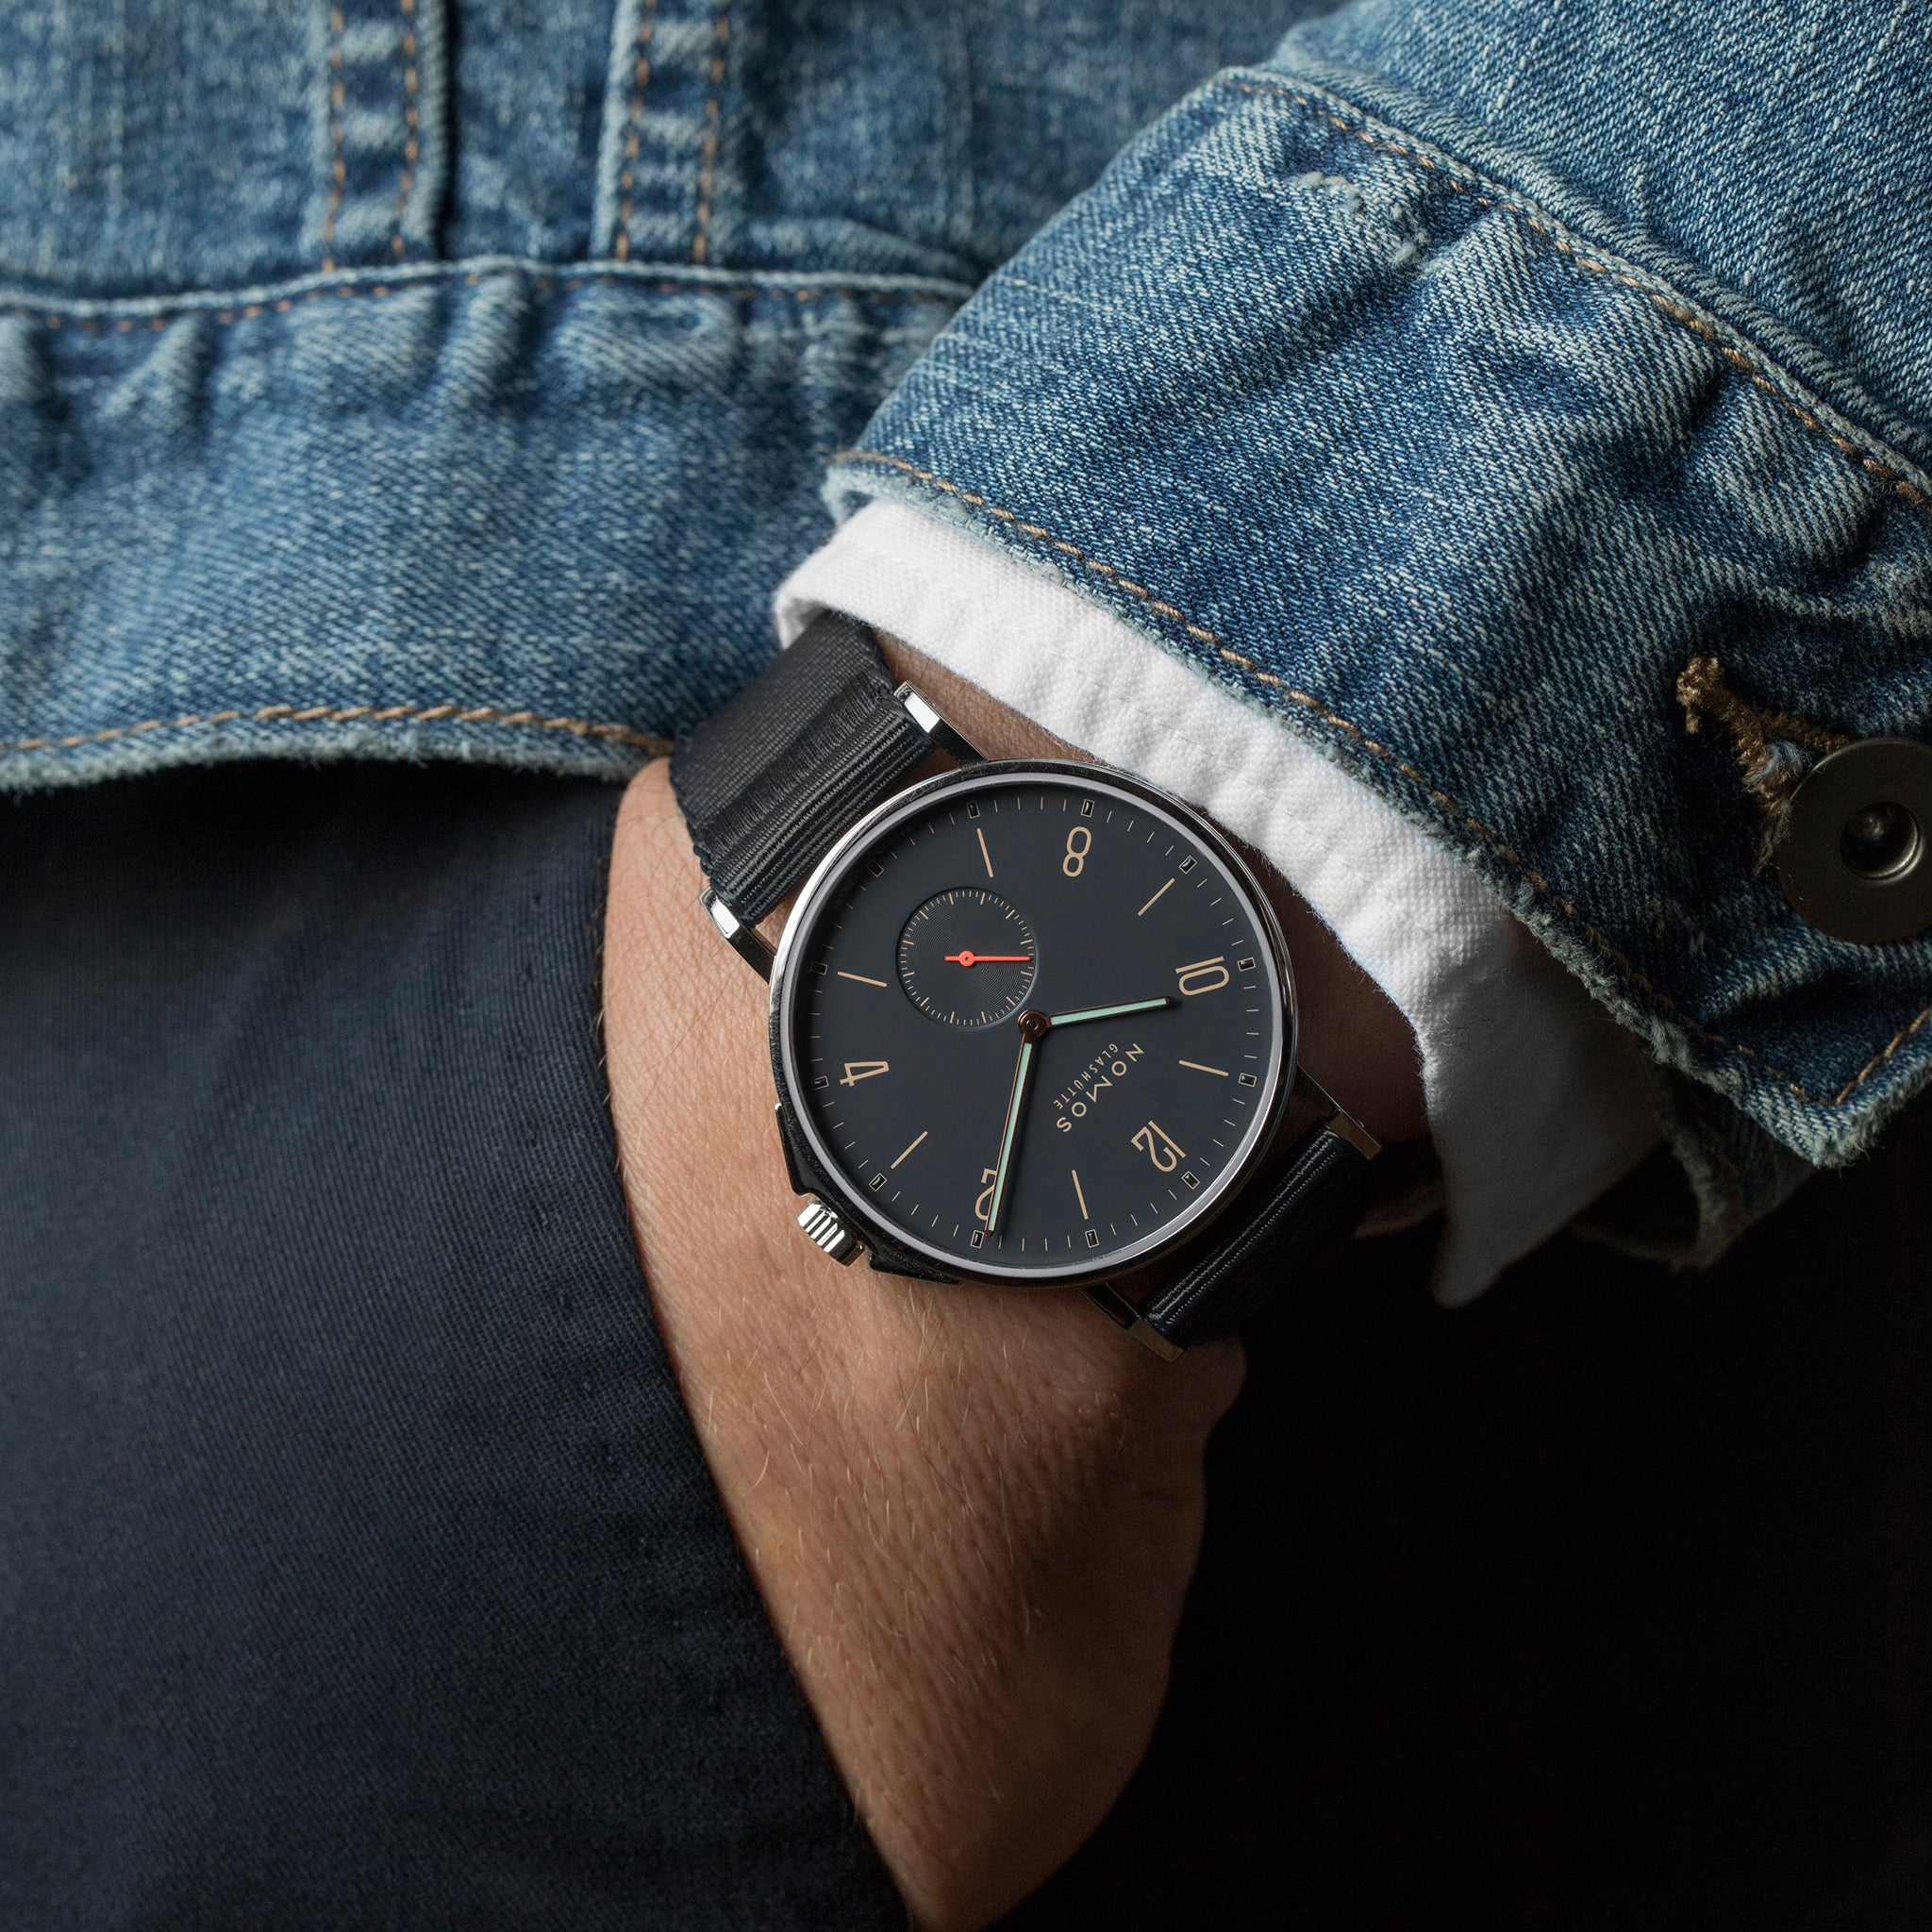 s under him jeans wants style give he men really watches what skagen journal